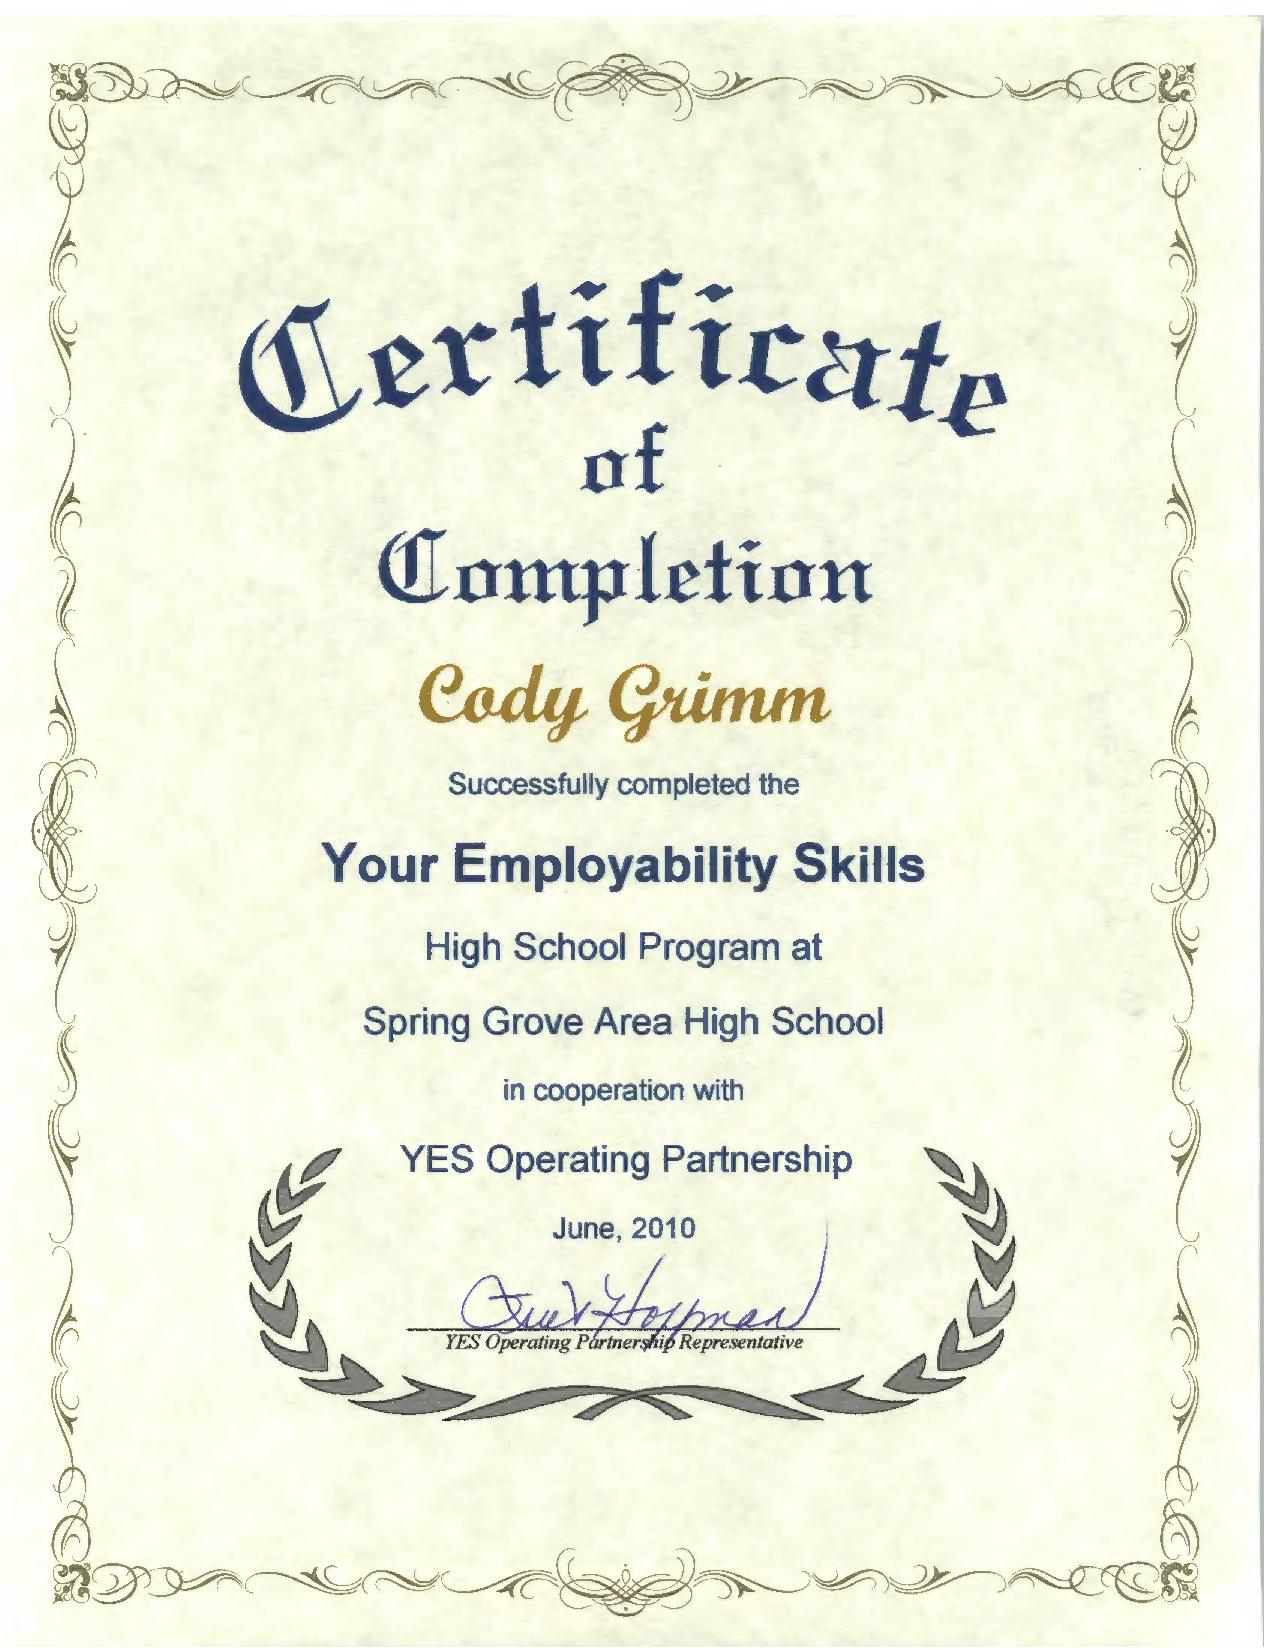 personal accomplishments your employability skills certificate awarded 2010